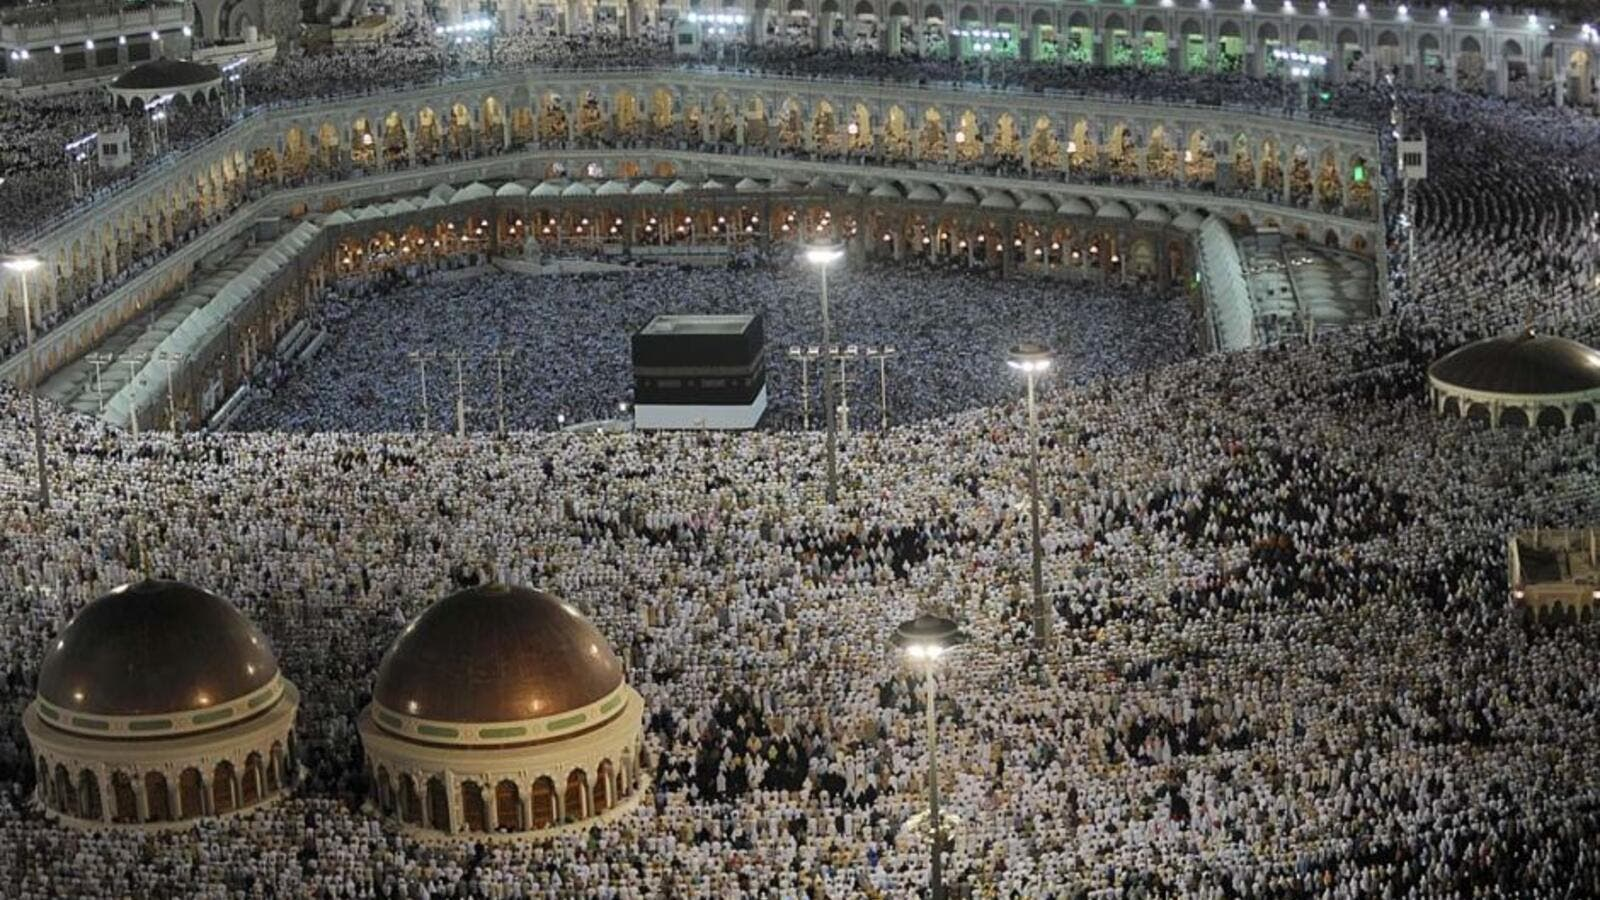 Millions of Muslims make the journey to Mecca in Saudi Arabia to perform the ritual of Hajj every year. (AFP/File)